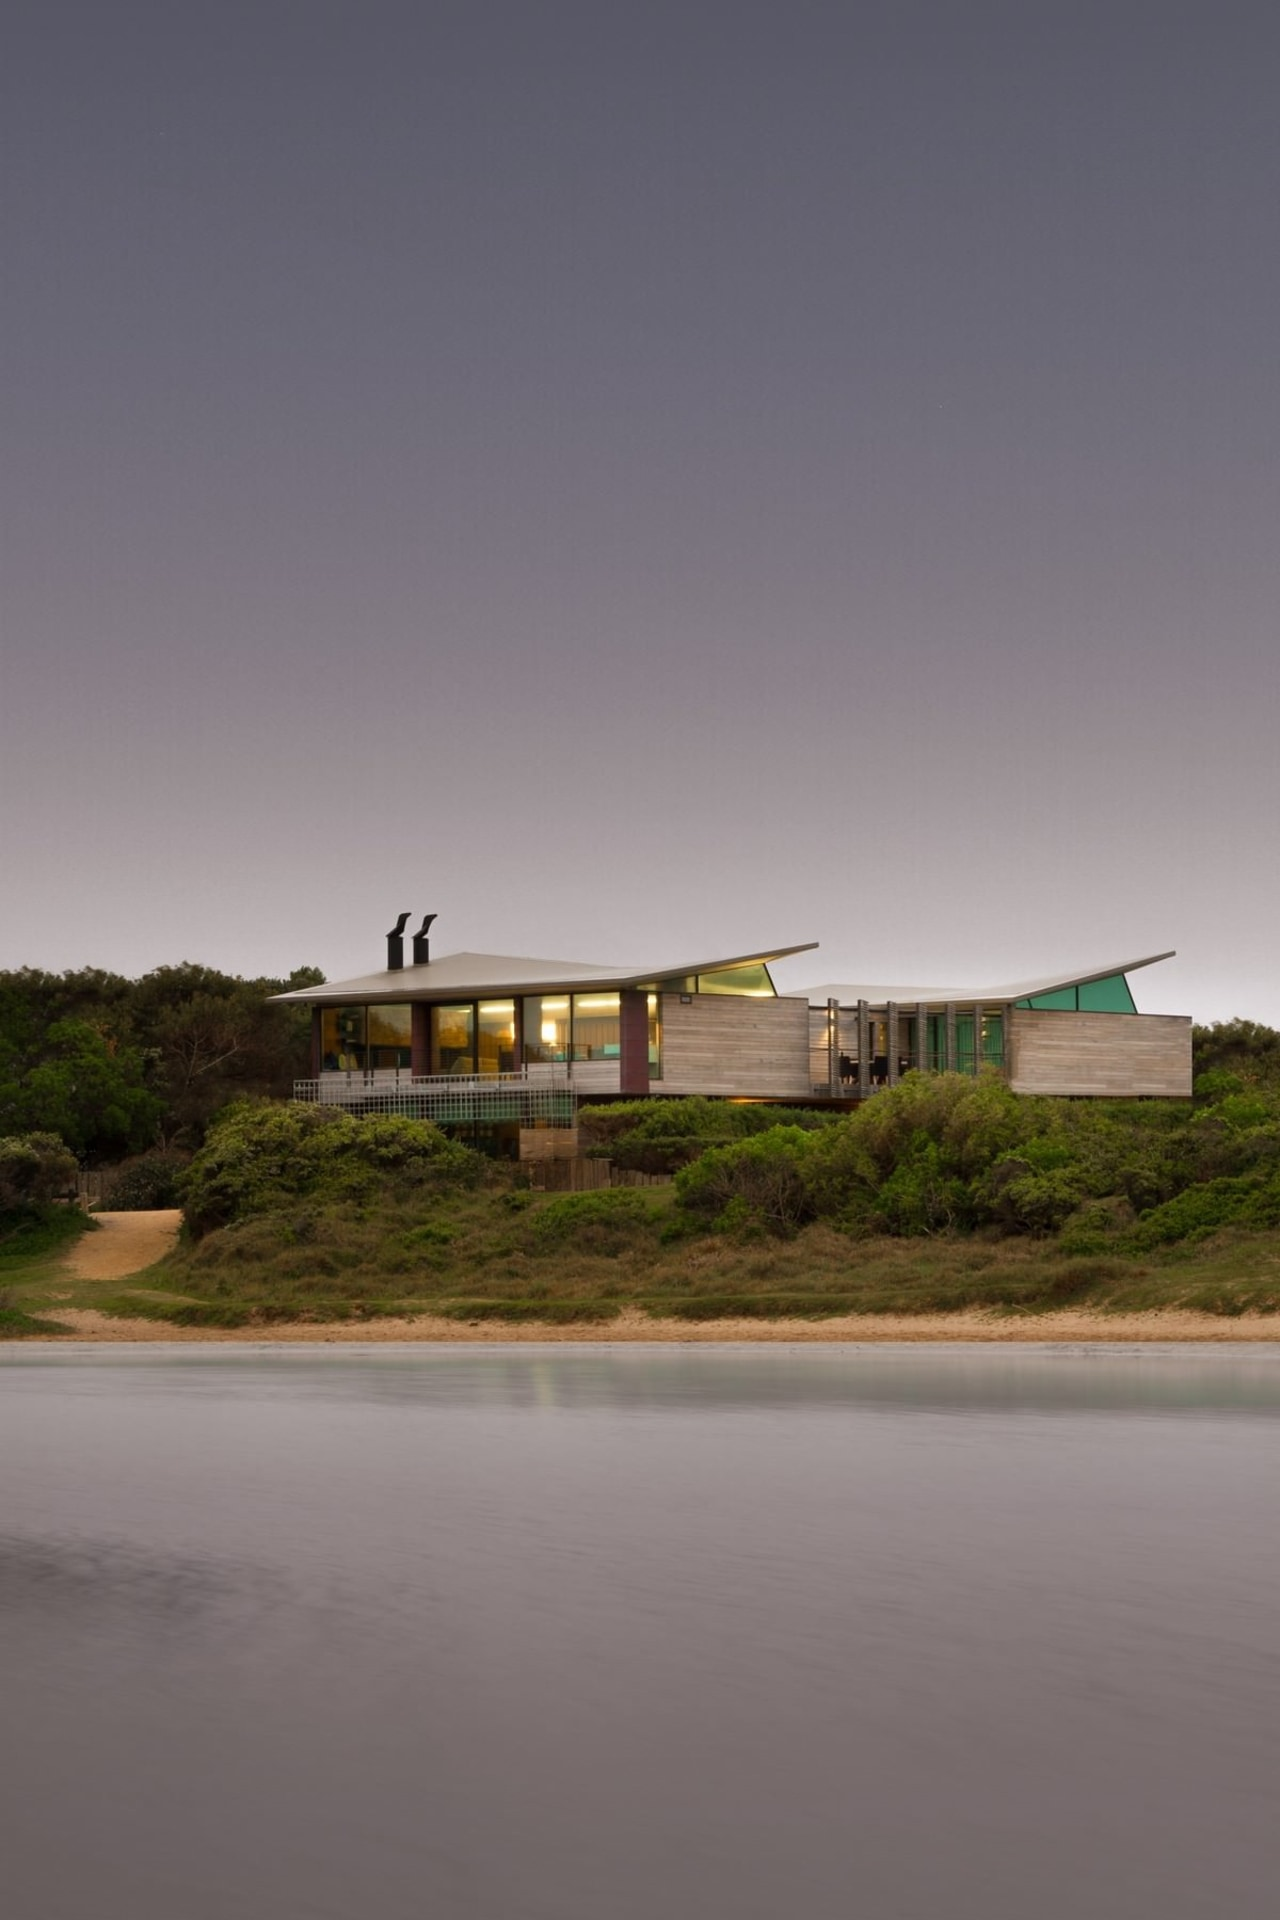 A view of the home from the water architecture, cloud, house, landscape, reflection, sky, water, gray